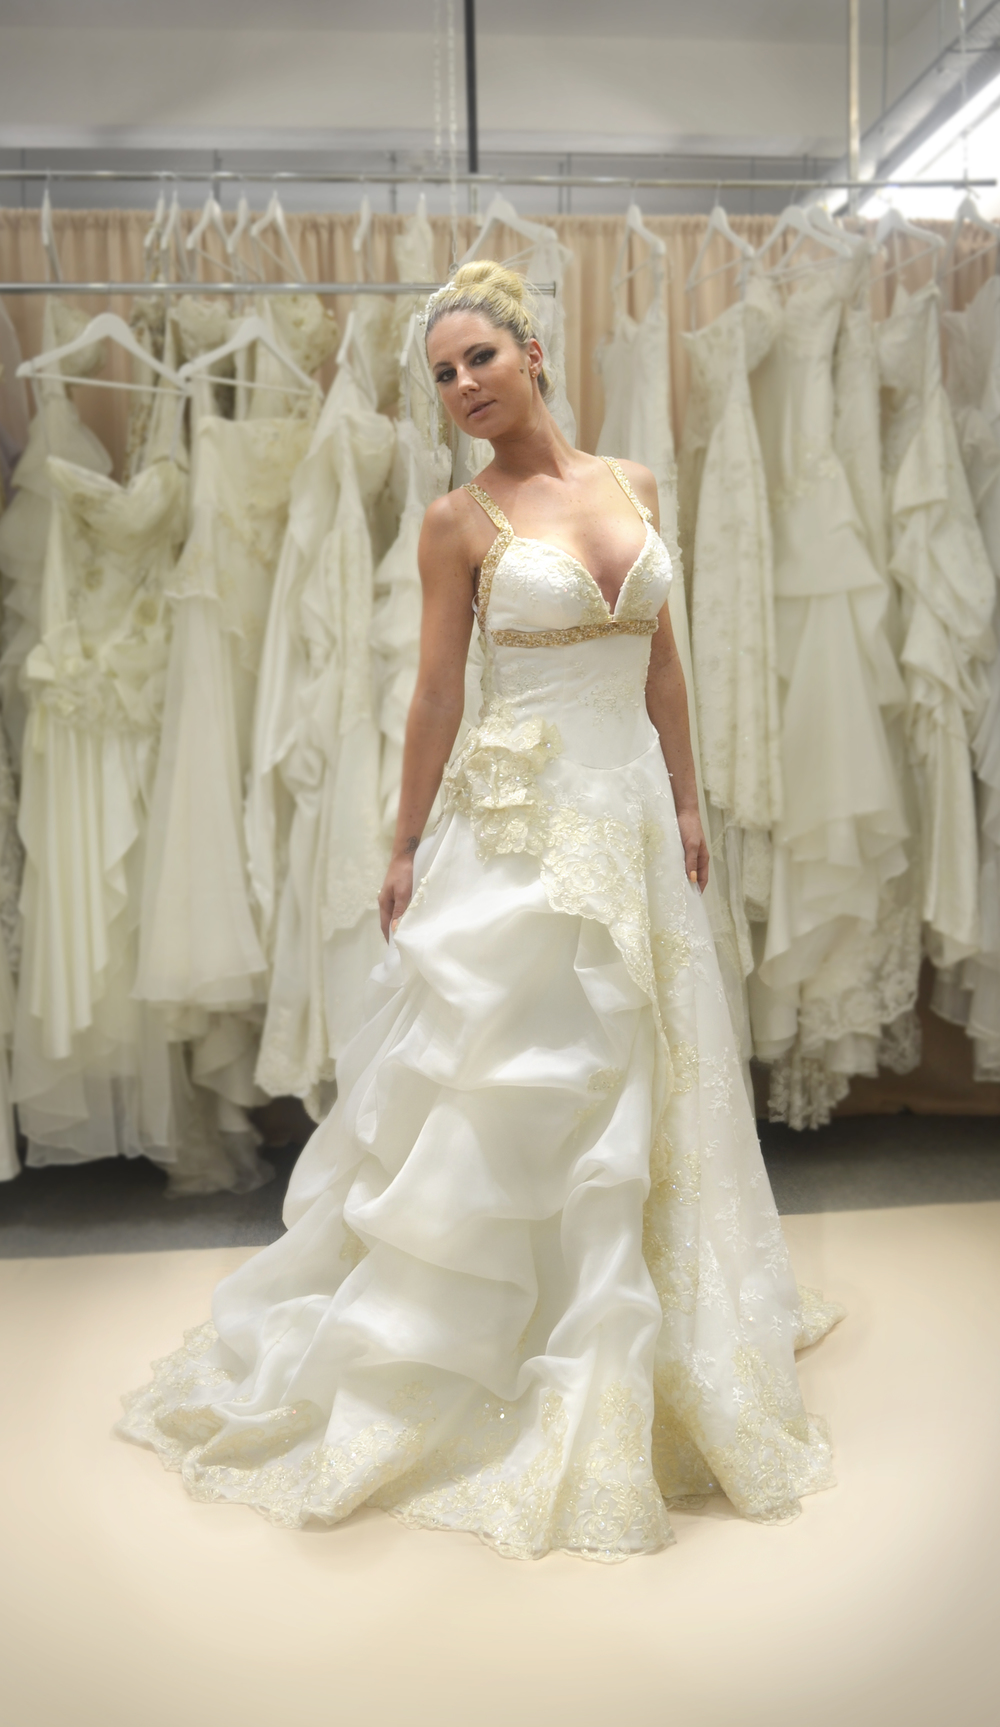 Custom made wedding dress Brisbane city